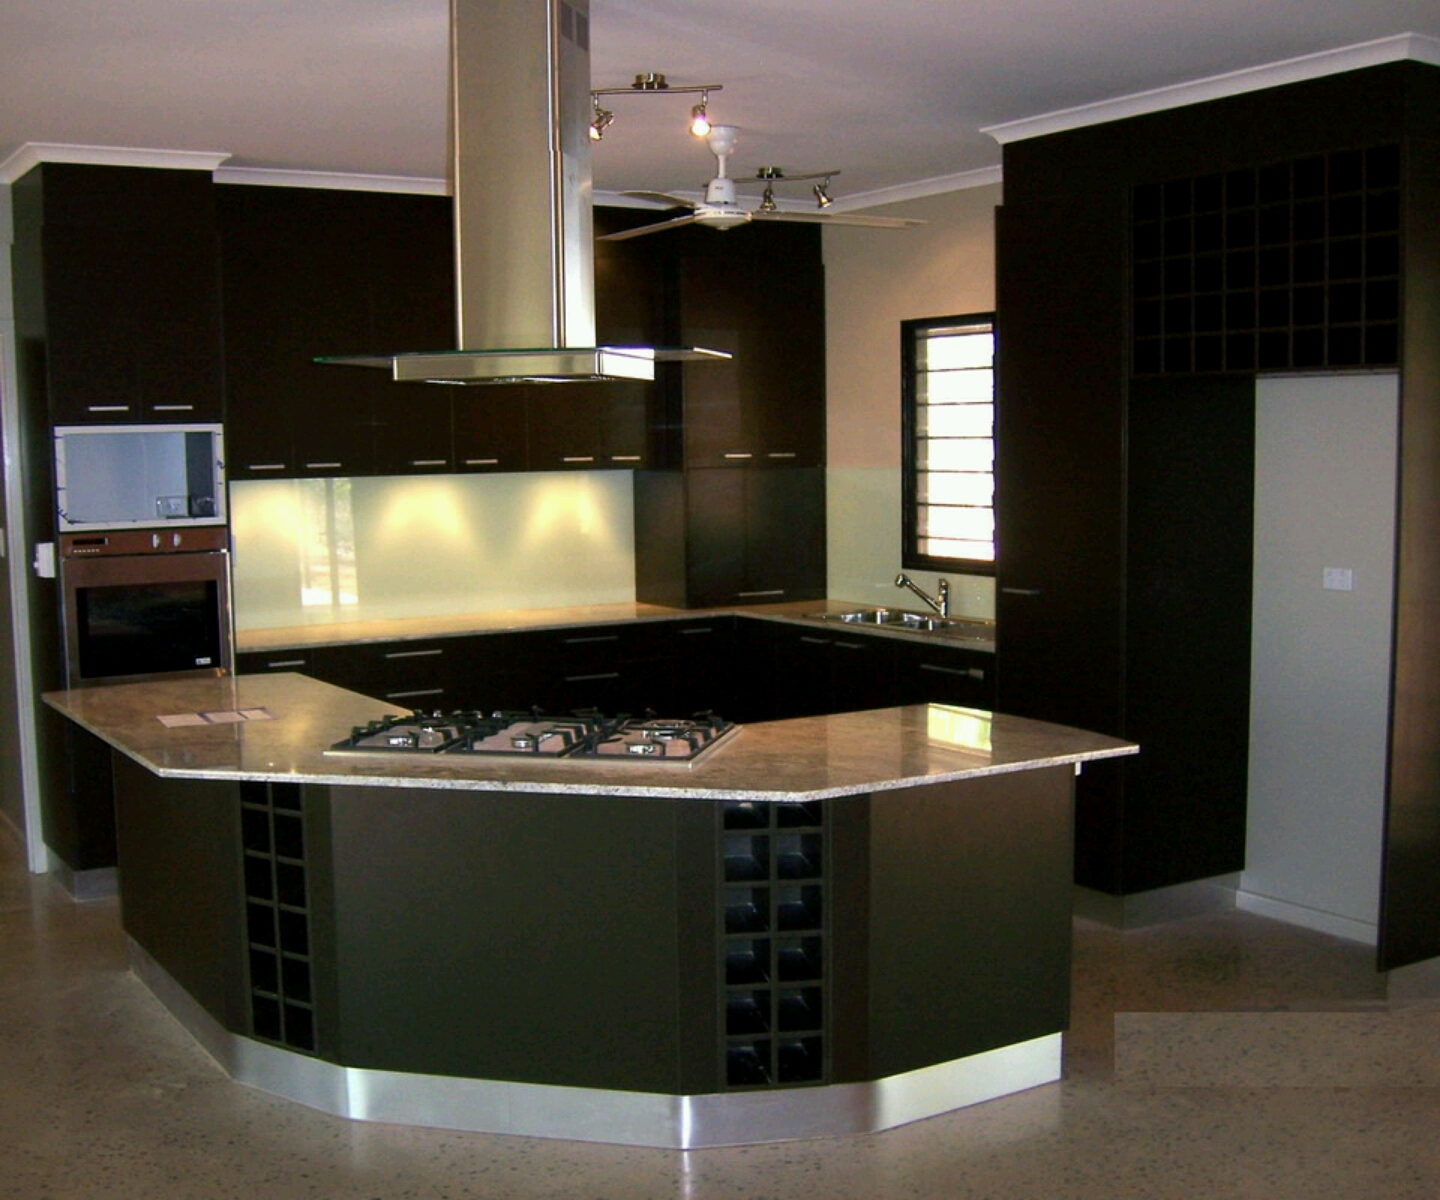 100 Design Of Cabinet For Kitchen How To Choose Kitchen Pantry Ideas For Small Room Dtmba